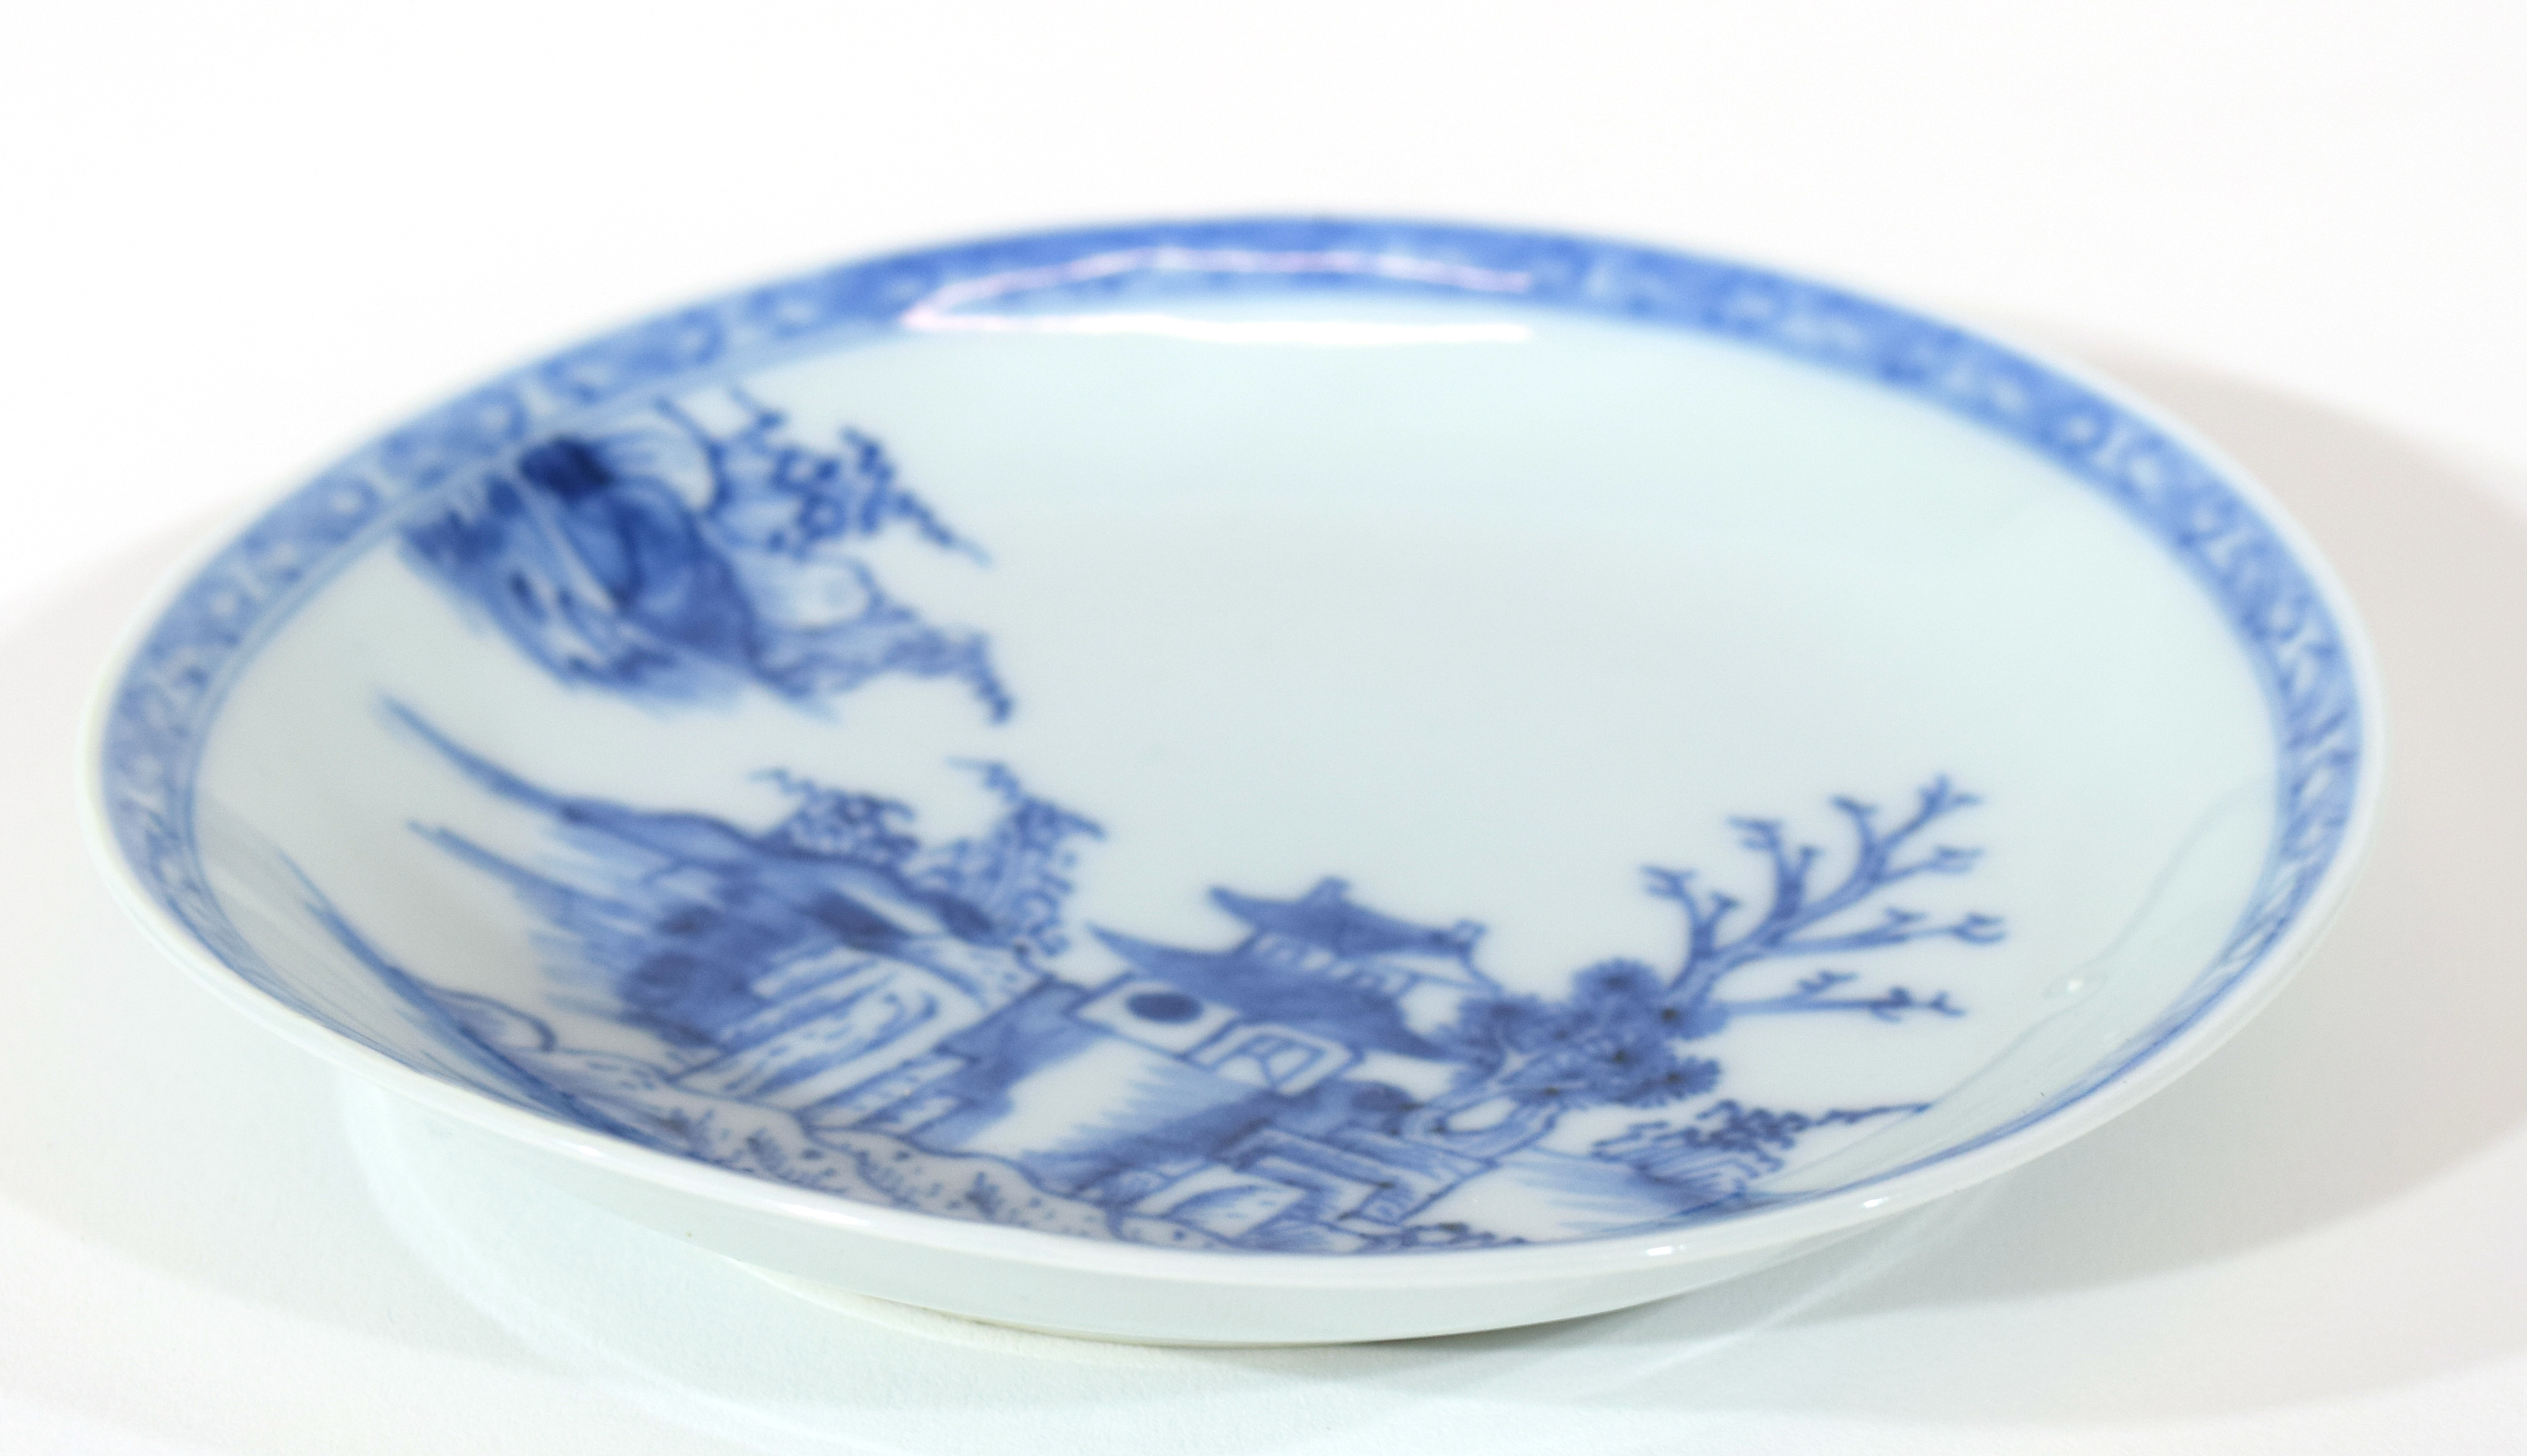 18th century Chinese porcelain Nanking Cargo tea bowl and saucer - Image 14 of 15